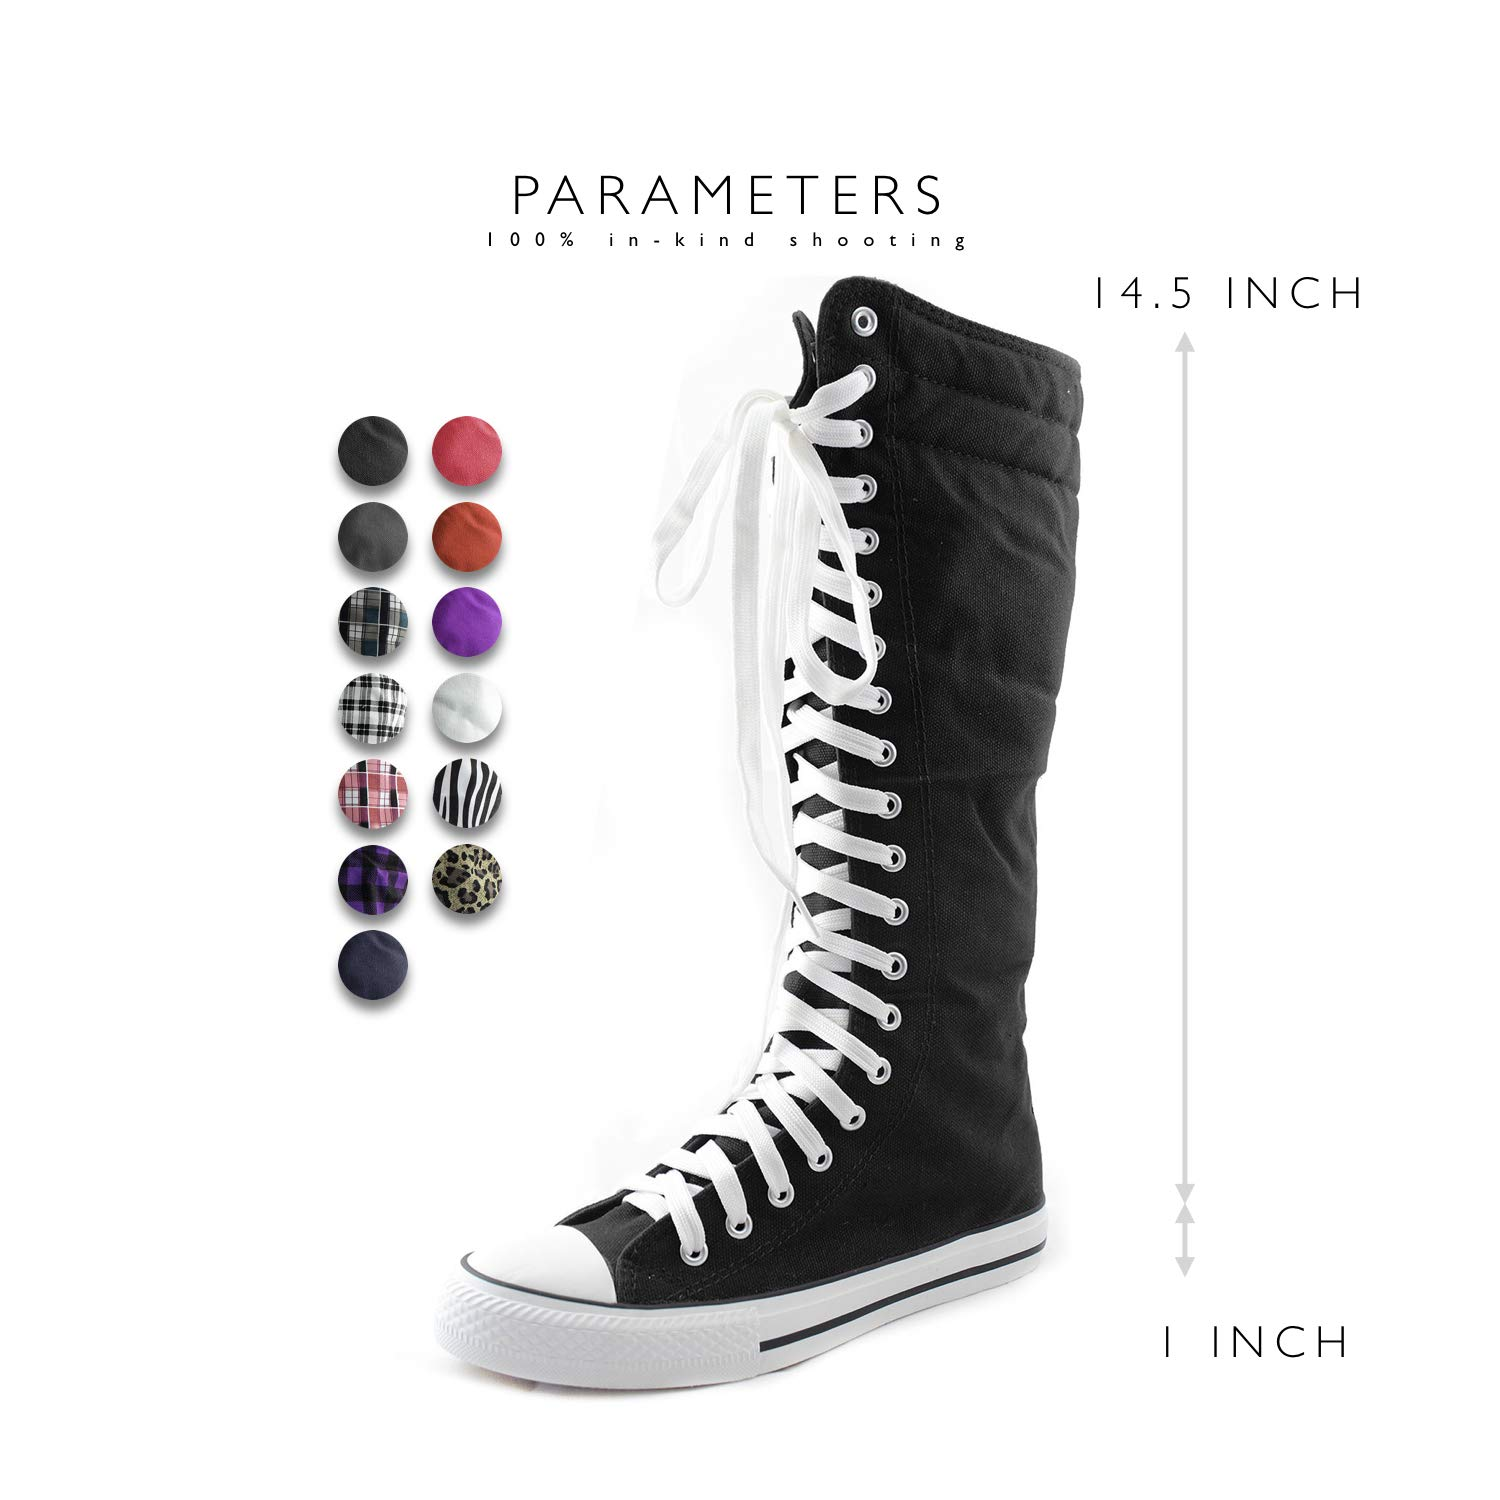 Mid Calf Knee High Woman Boots Tall Classic Canvas Sky High Lace up Stylish Punk Flat Sneaker Boots